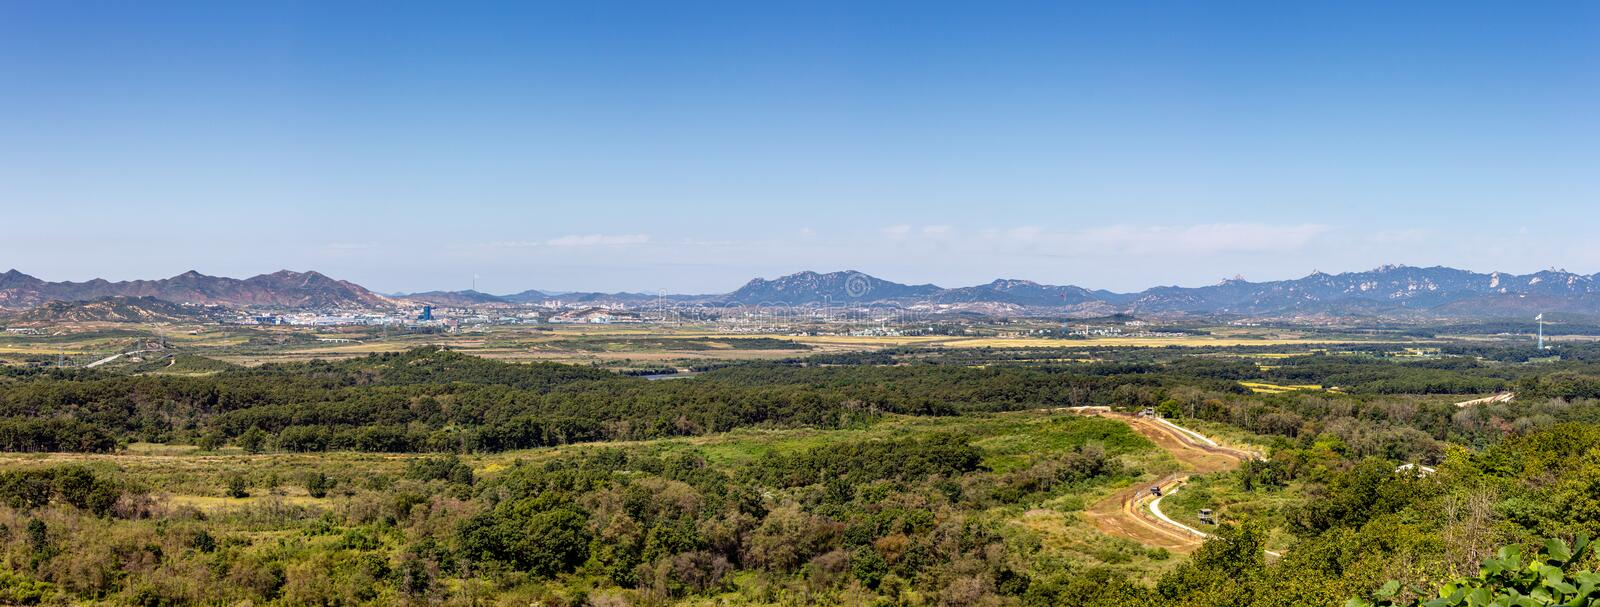 North Korea and the DMZ. Panoramic View from the Dora observatory stock photo